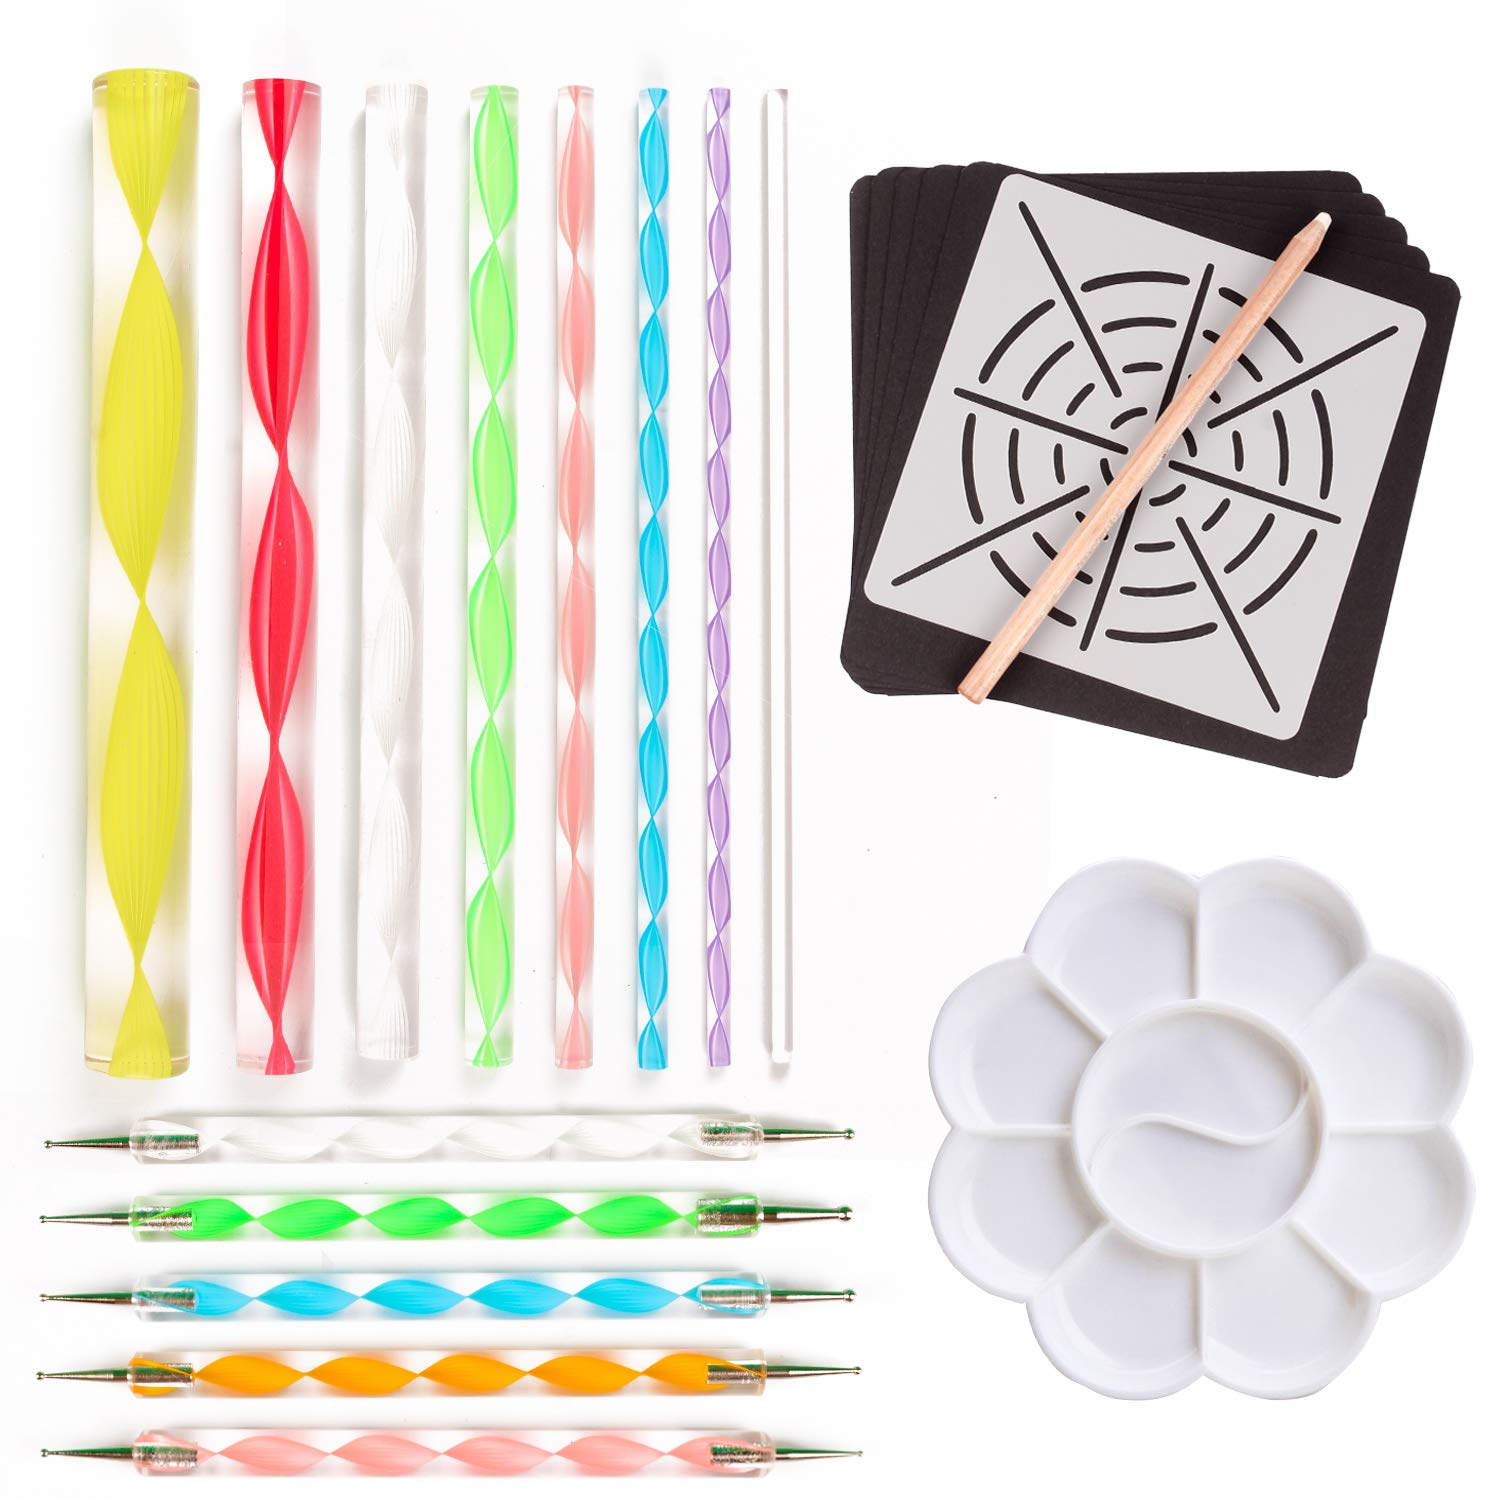 Mandala Dotting Tools Kit - SUNVORE Dotting Tools for Mandala Rock Painting Dot Mandalas Painting, Set of 21